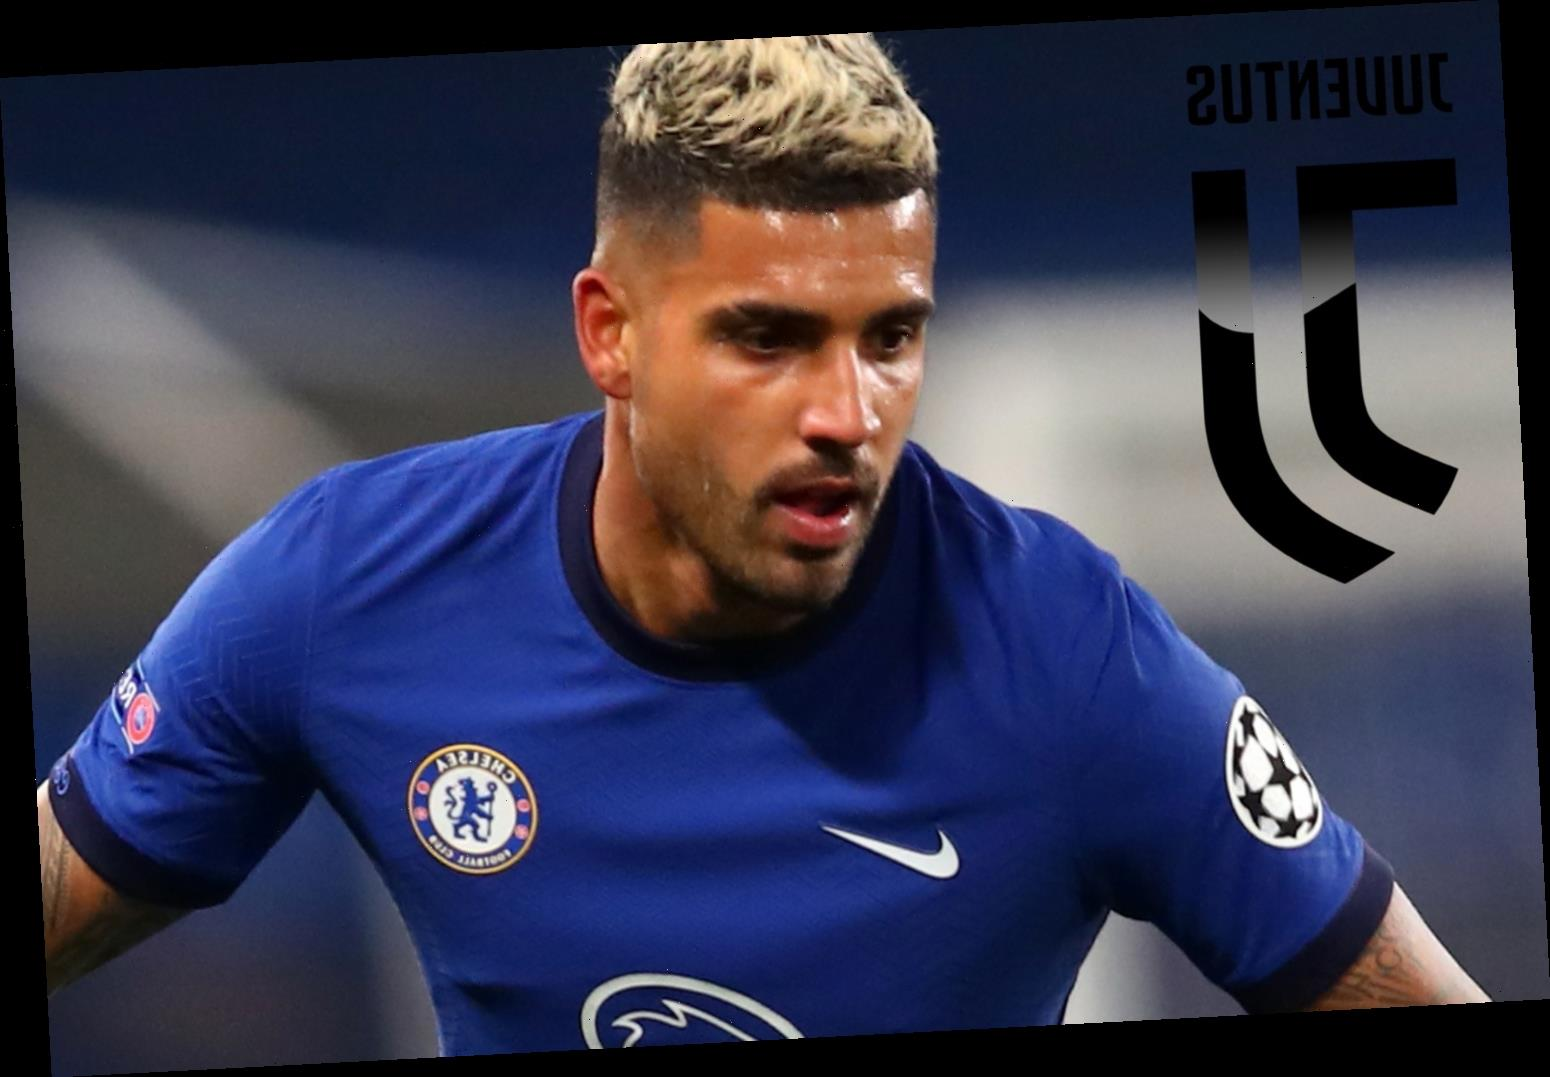 Chelsea outcast Emerson Palmieri wanted by Juventus again in January transfer window after failed summer bid